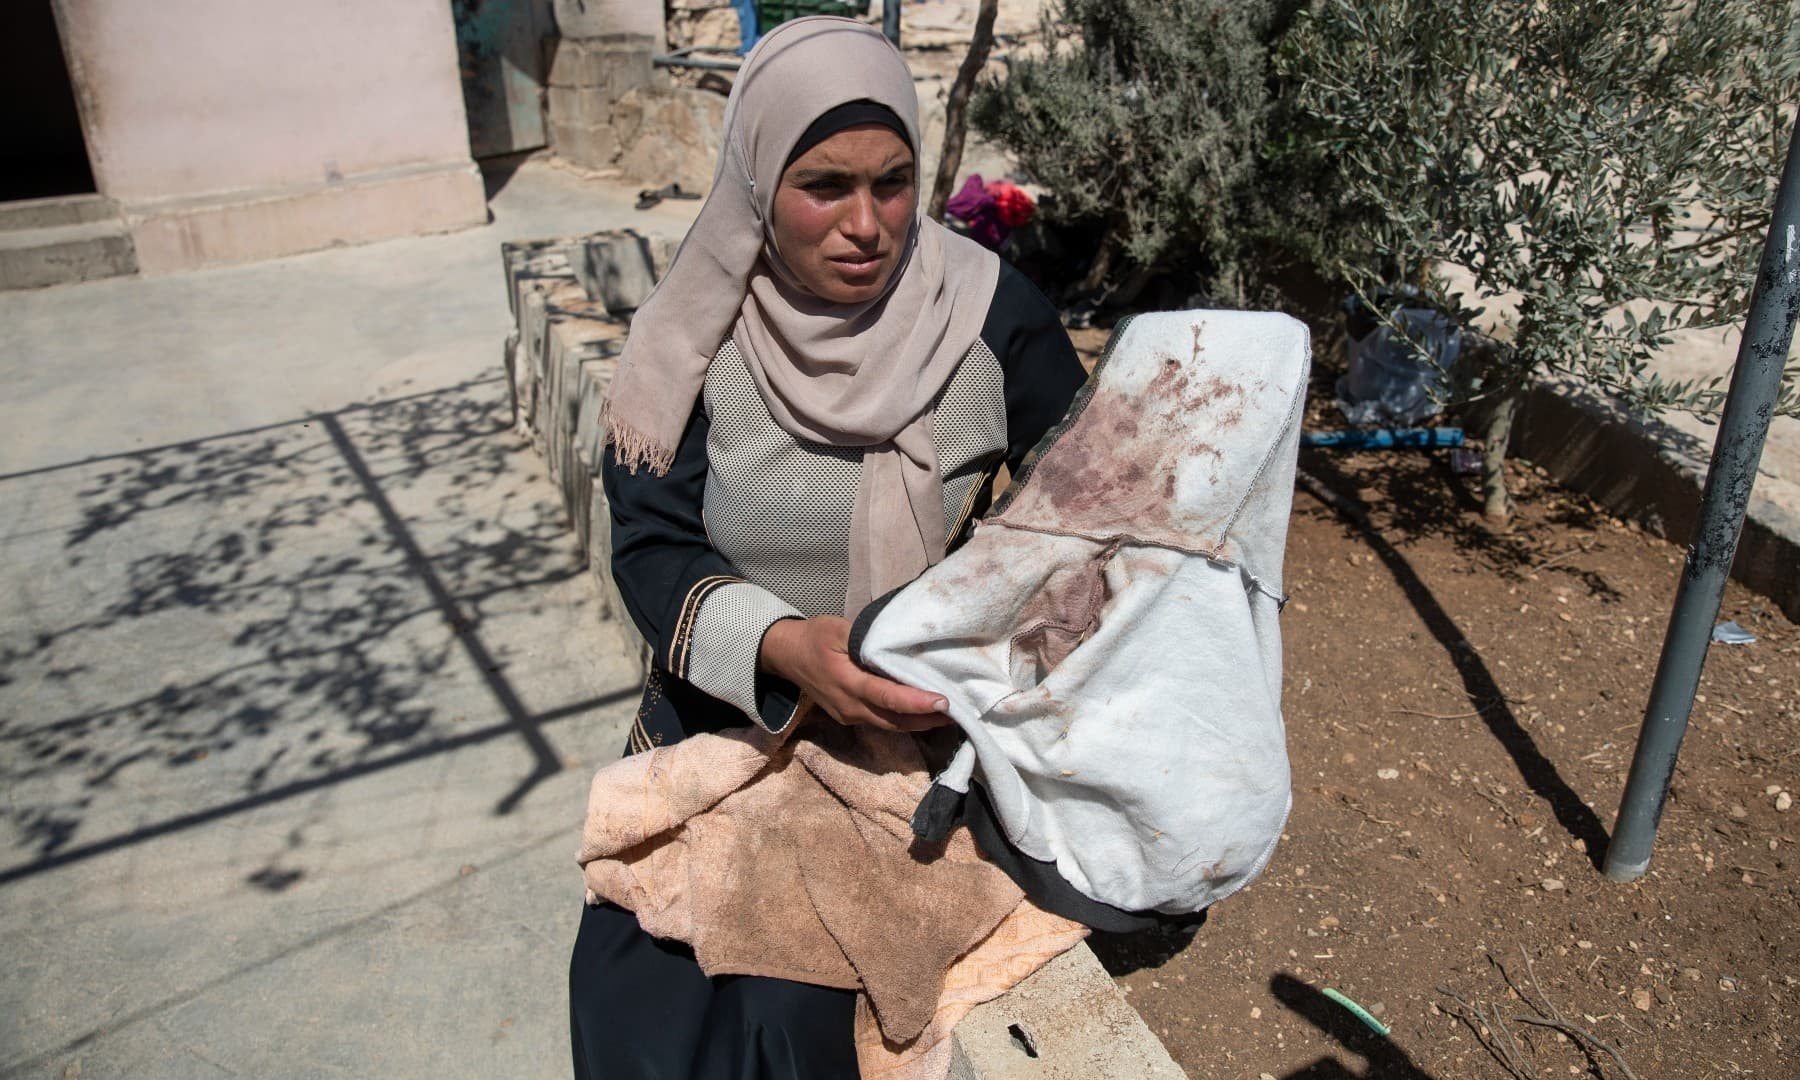 Palestinian mother Baraa Hamamdi holds her injured son's bloodstained clothes that was left behind after Mohammed was evacuated to an Israeli hospital, following a settlers attack on her Palestinian Bedouin community, in the West Bank village of Al-Mufagara, on Sept 30. — AP